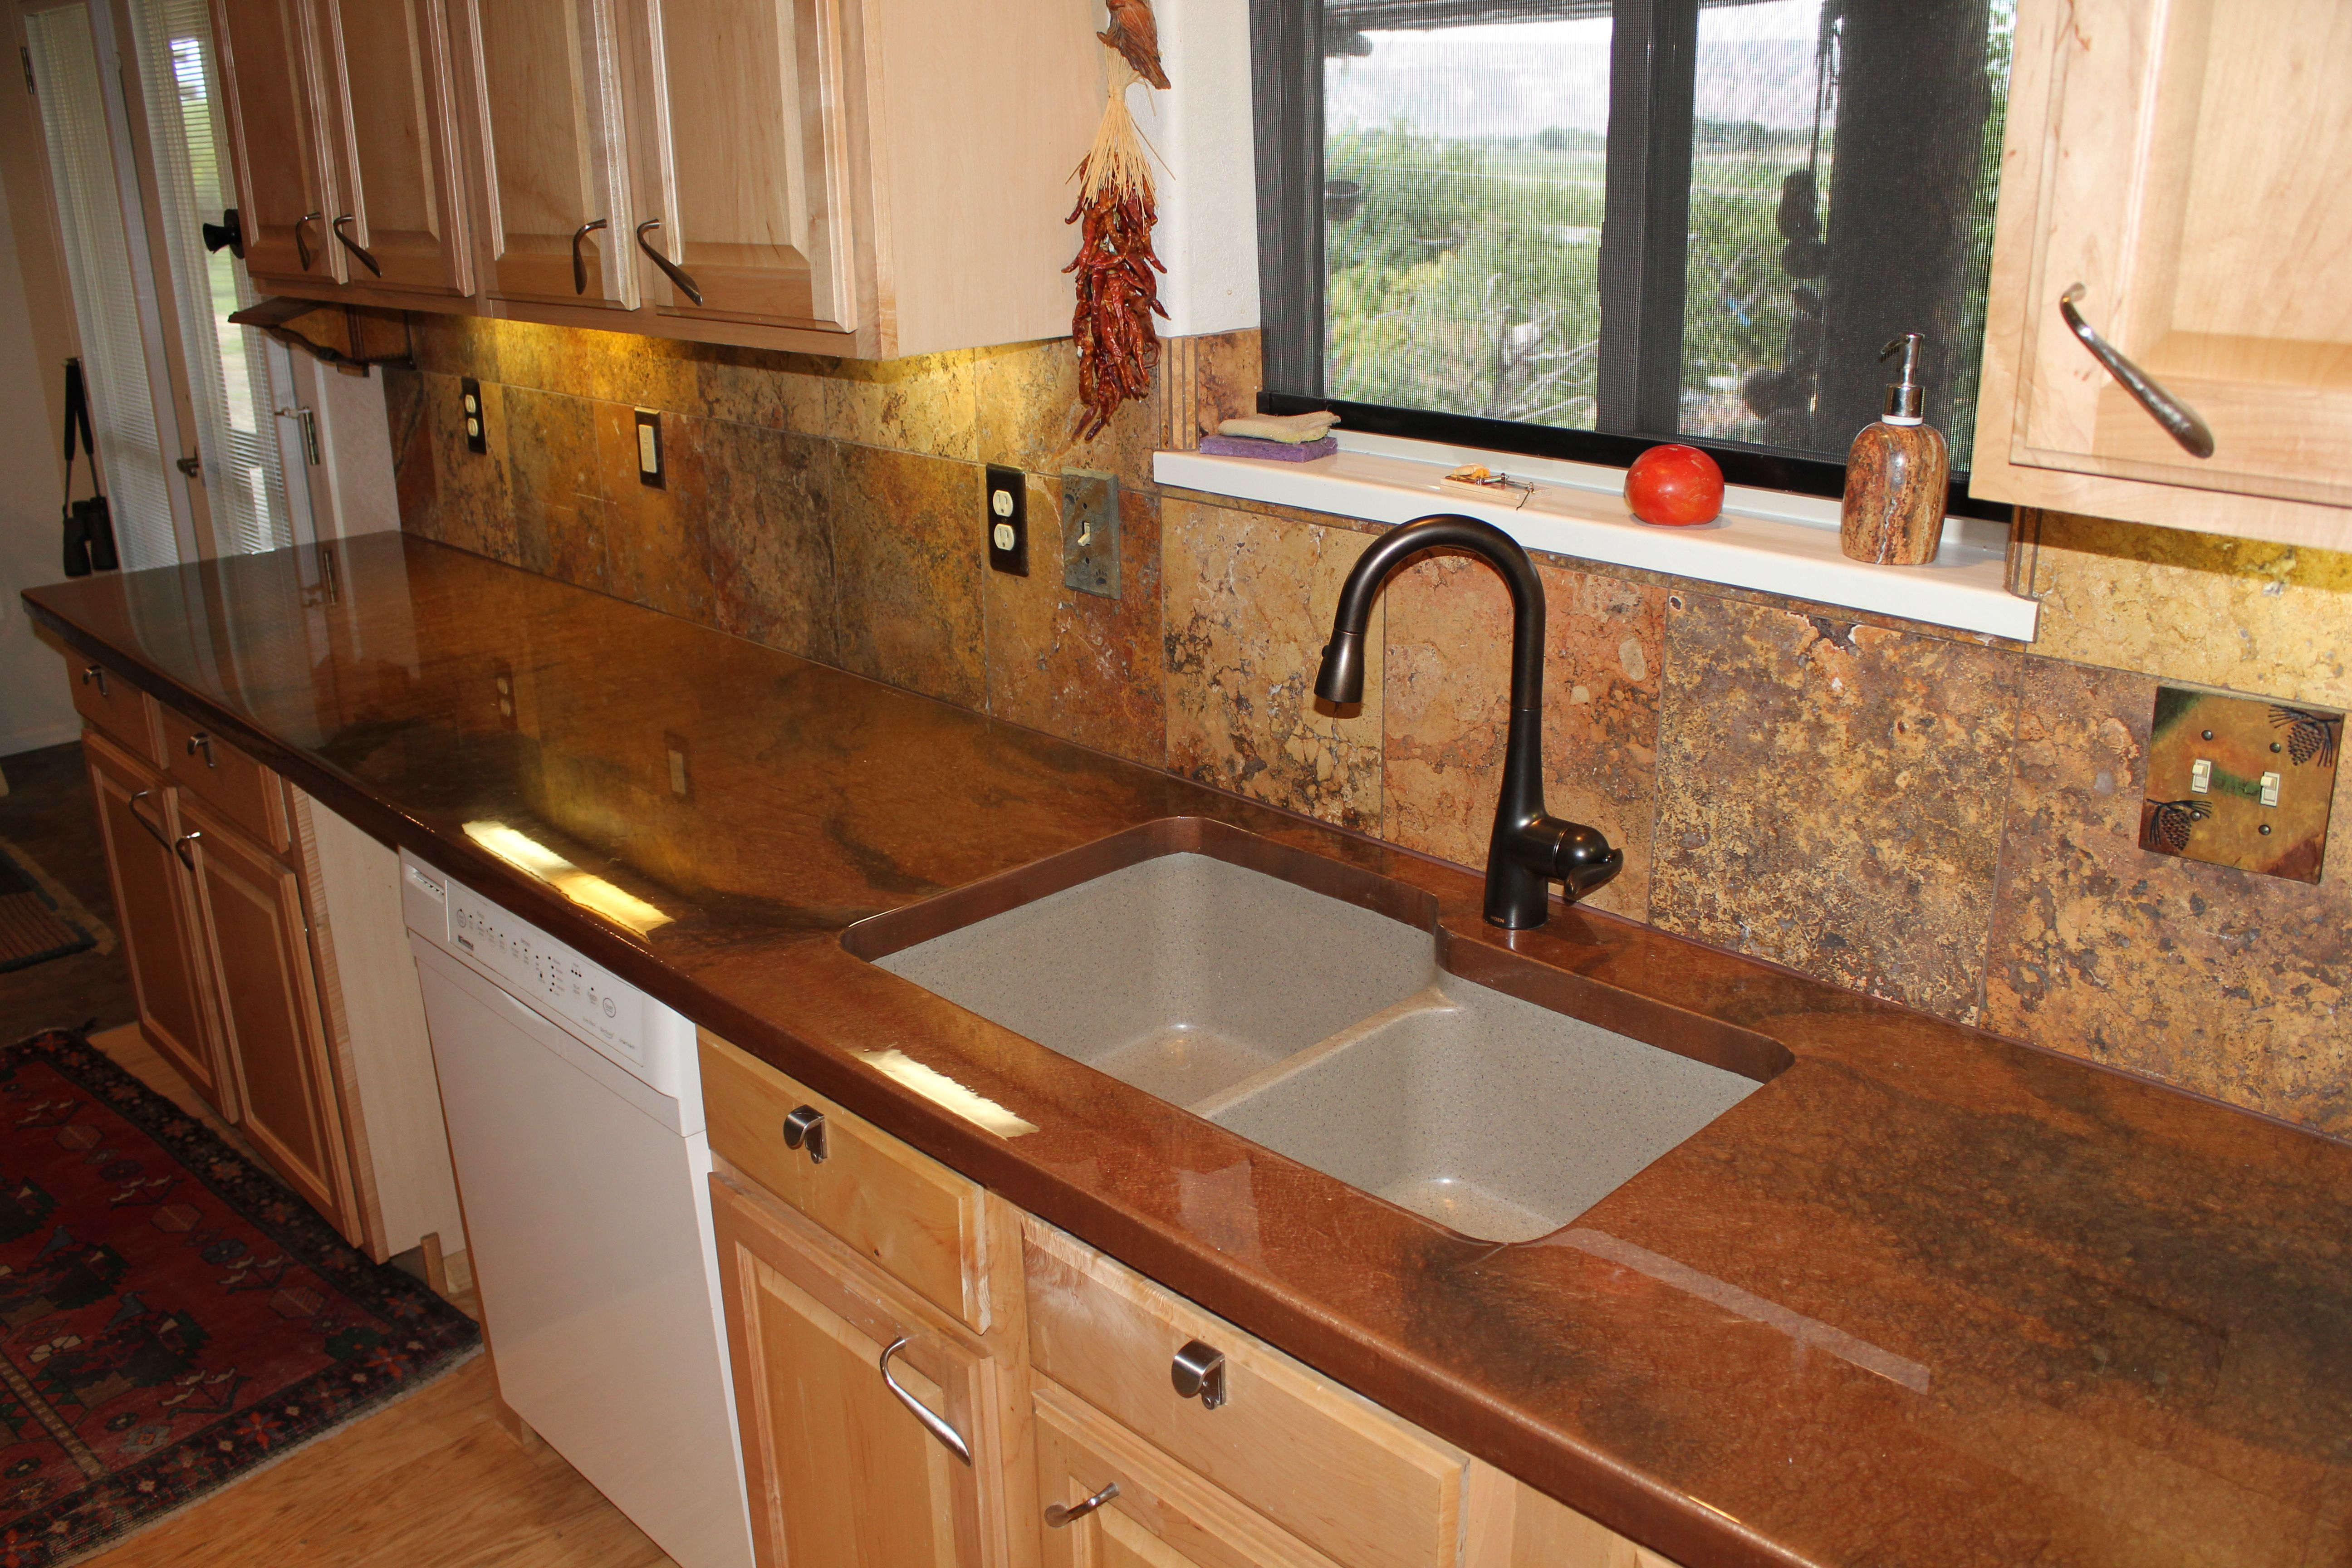 Copper With Metallic Brown Accents Countertopepoxy Com Epoxy Countertop Diy Countertops Countertops